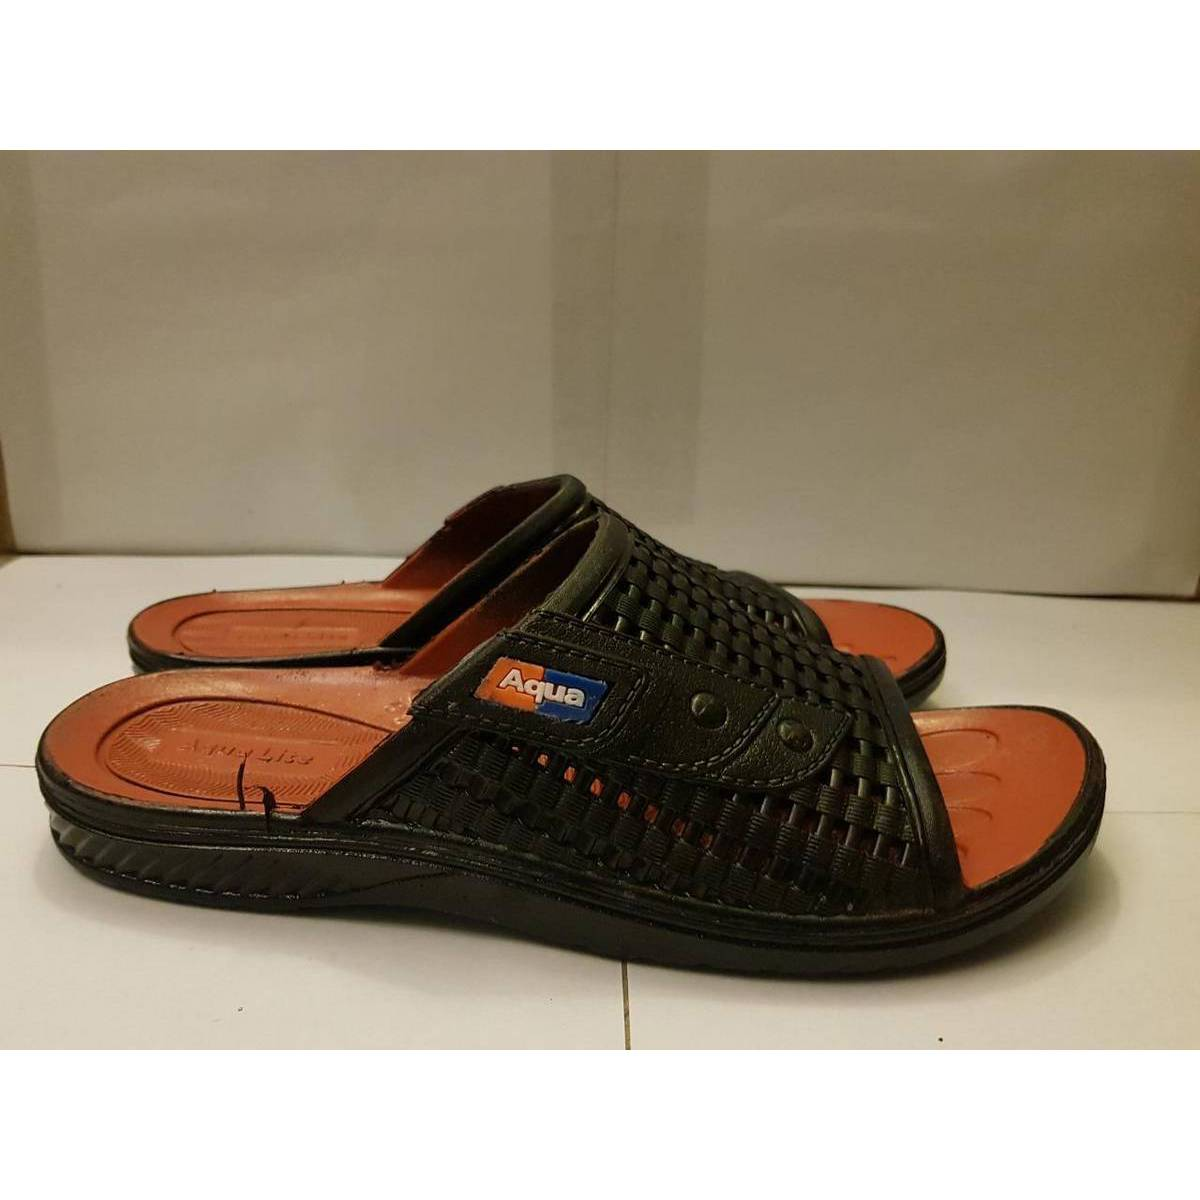 Rubber Sandals/Slippers Shoes - Waterproof - Soft And Comfortable - Black Color -A013